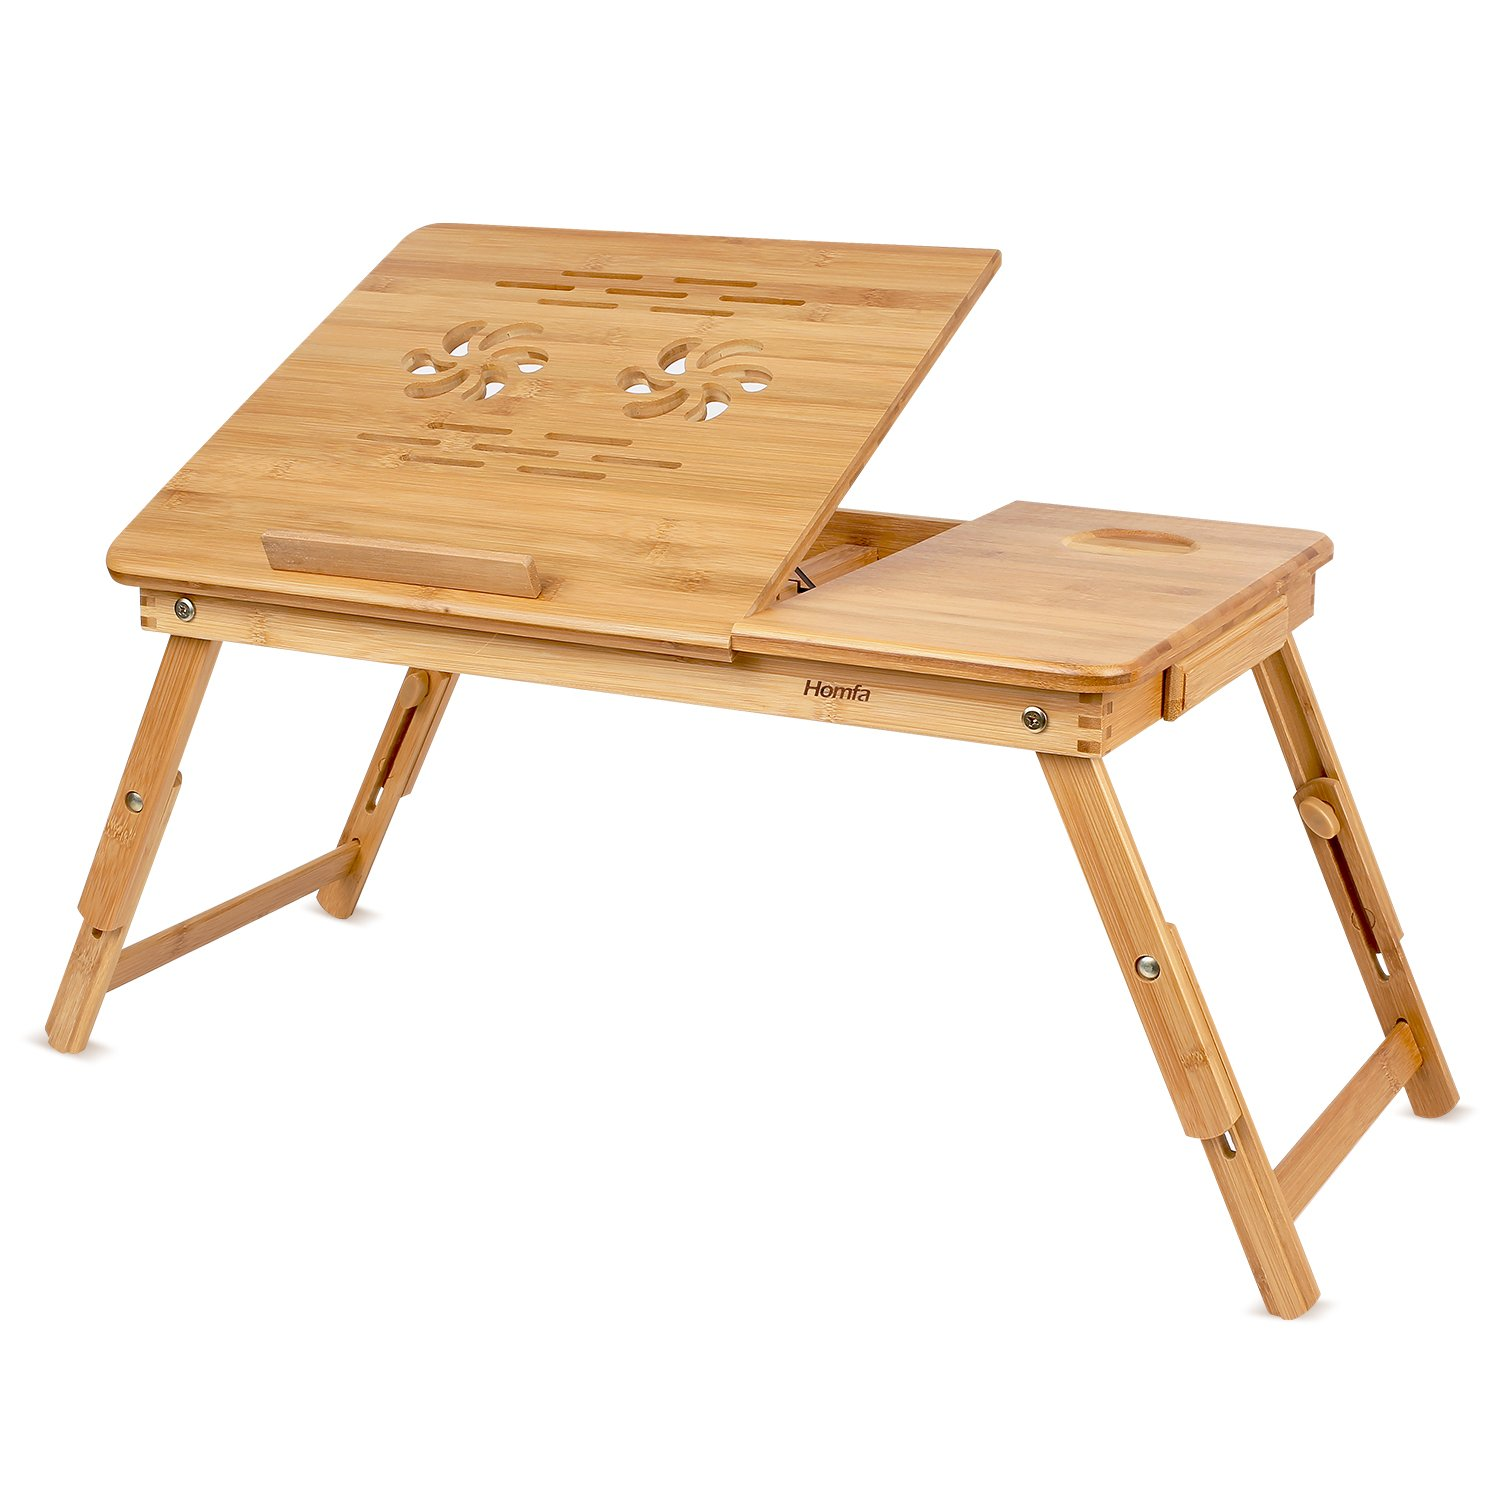 Homfa Bamboo Laptop Desk Adjustable Portable Breakfast Serving Bed Tray with Tilting Top Drawer SYNCHKG119858